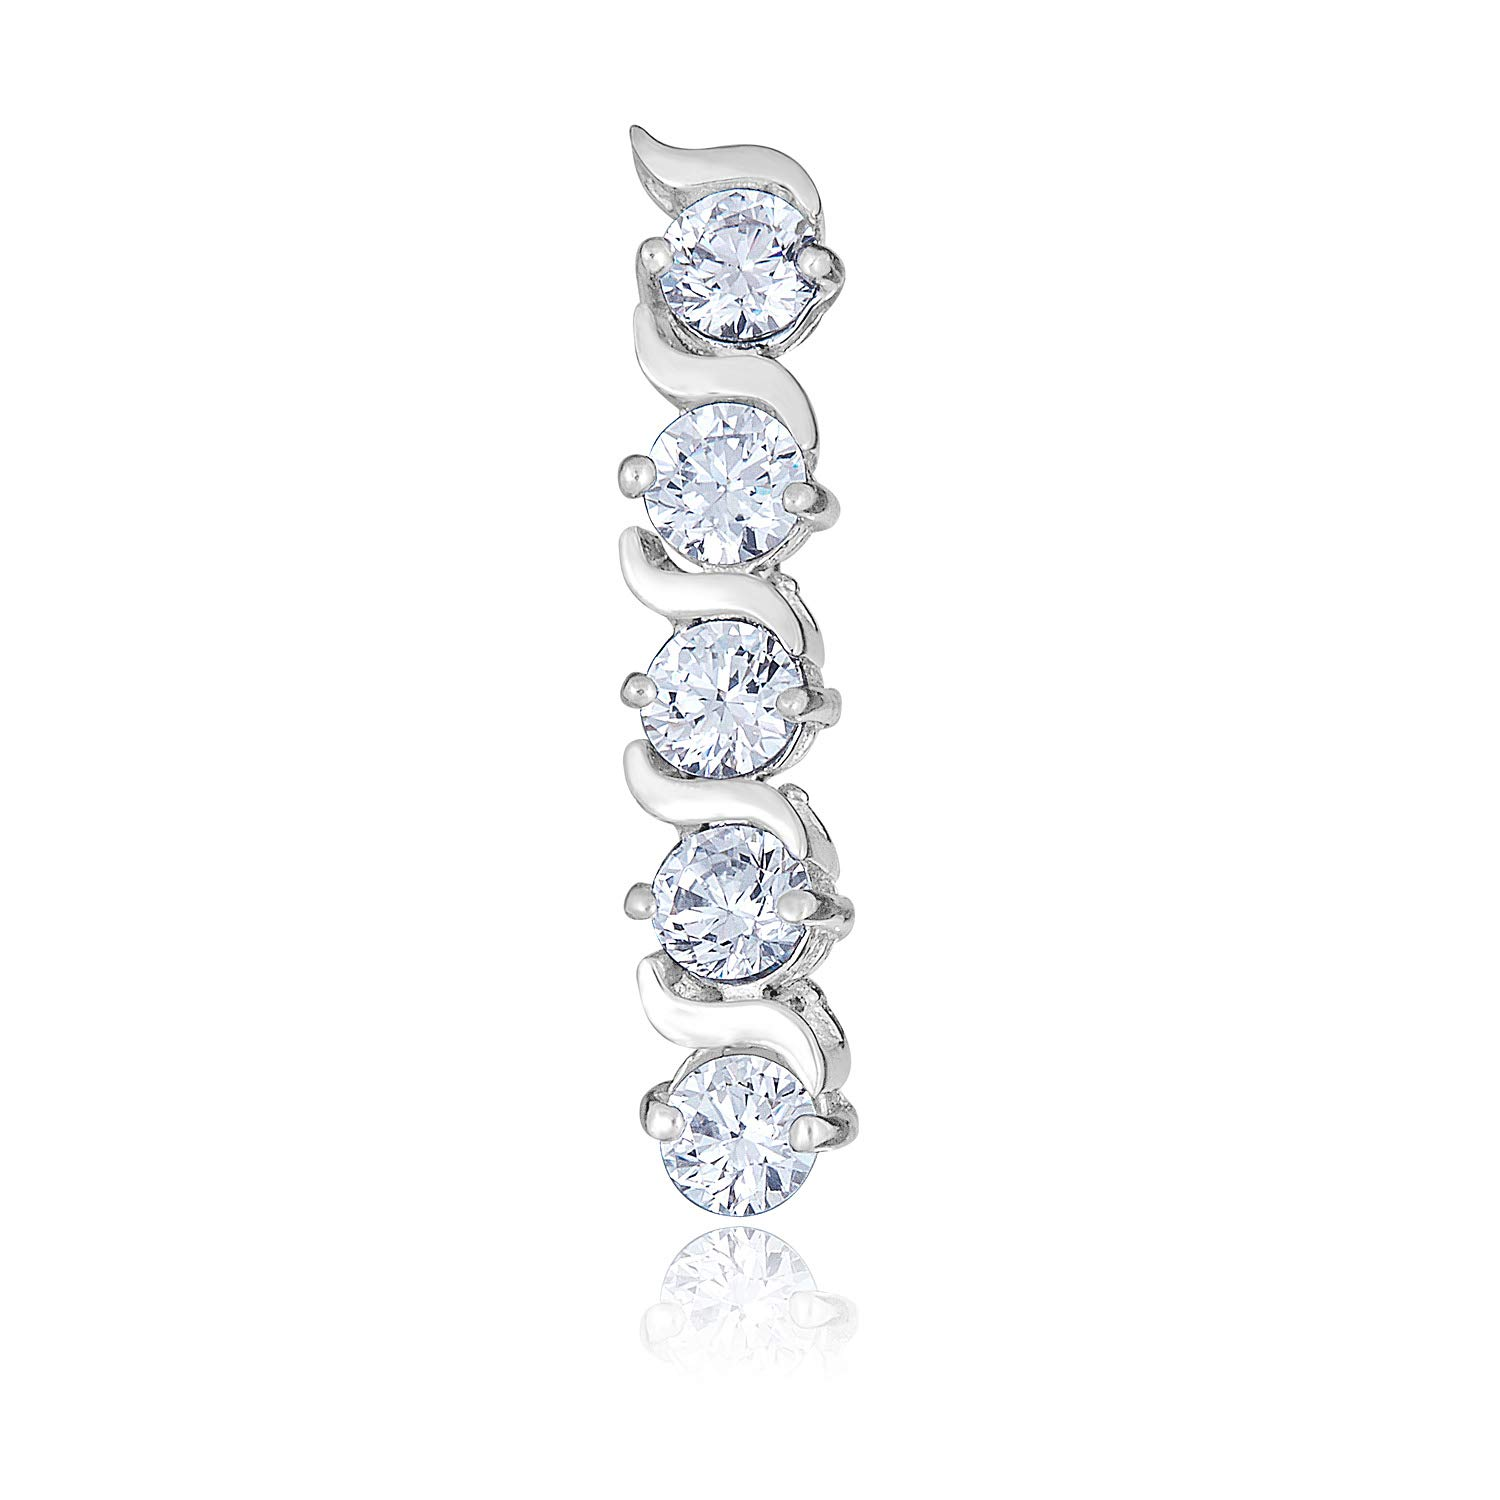 AVORA 10K White Gold Simulated Diamond CZ Linear Belly Button Ring Body Jewelry - 014 Gauge by AVORA